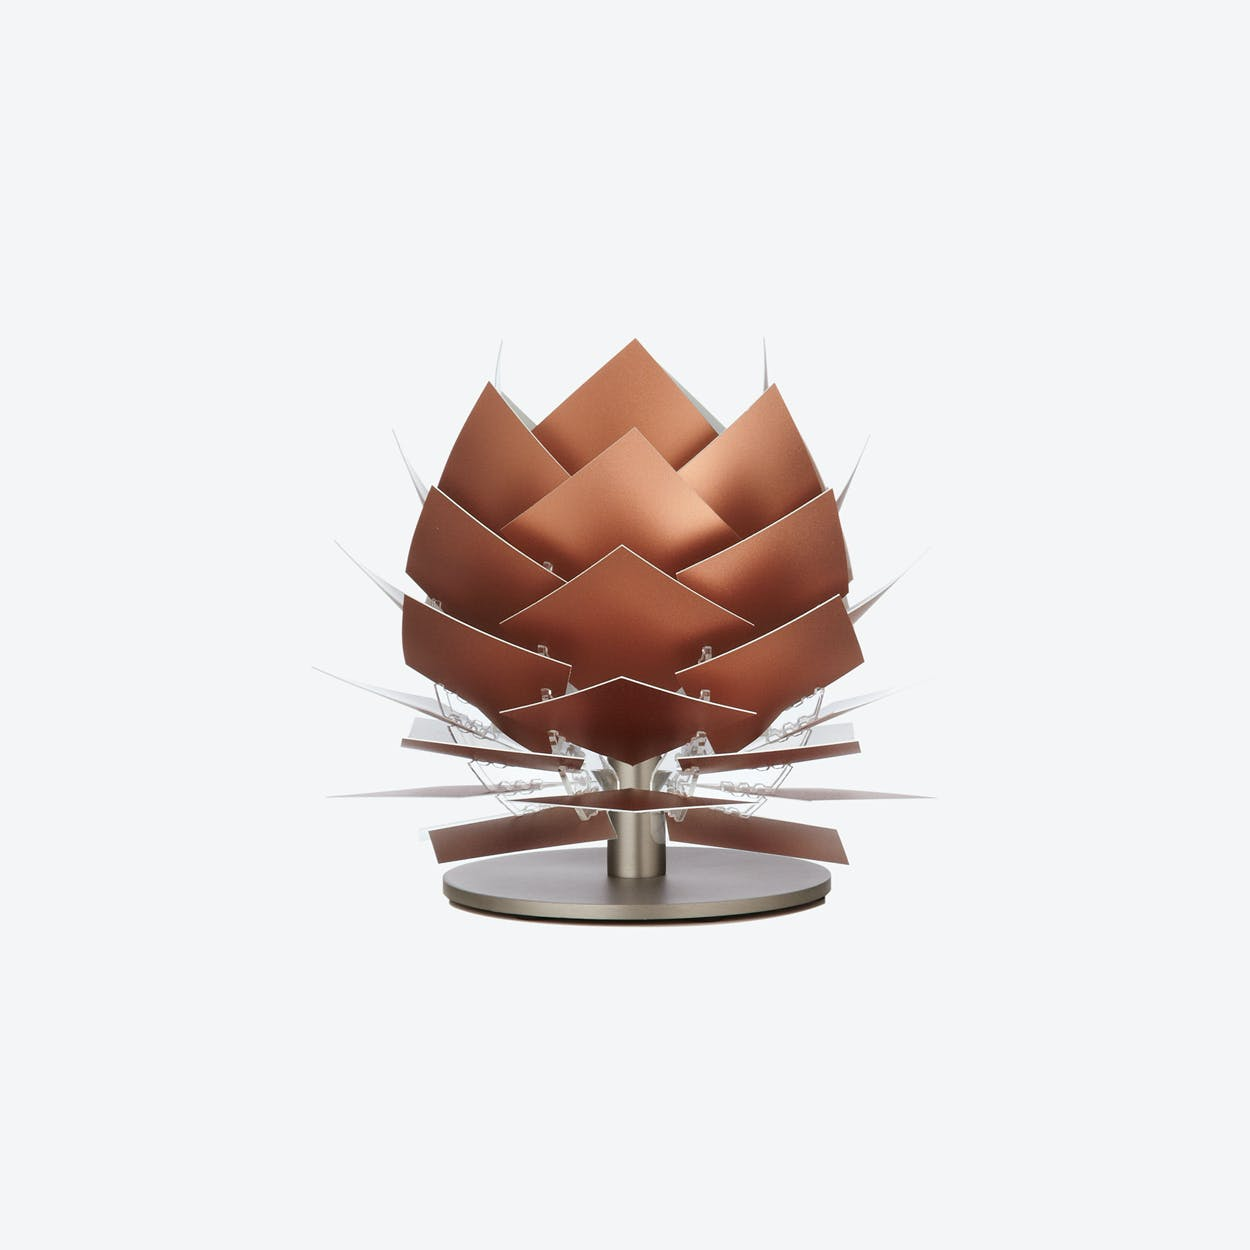 XS PineApple Low Table Lamp in Copper Look